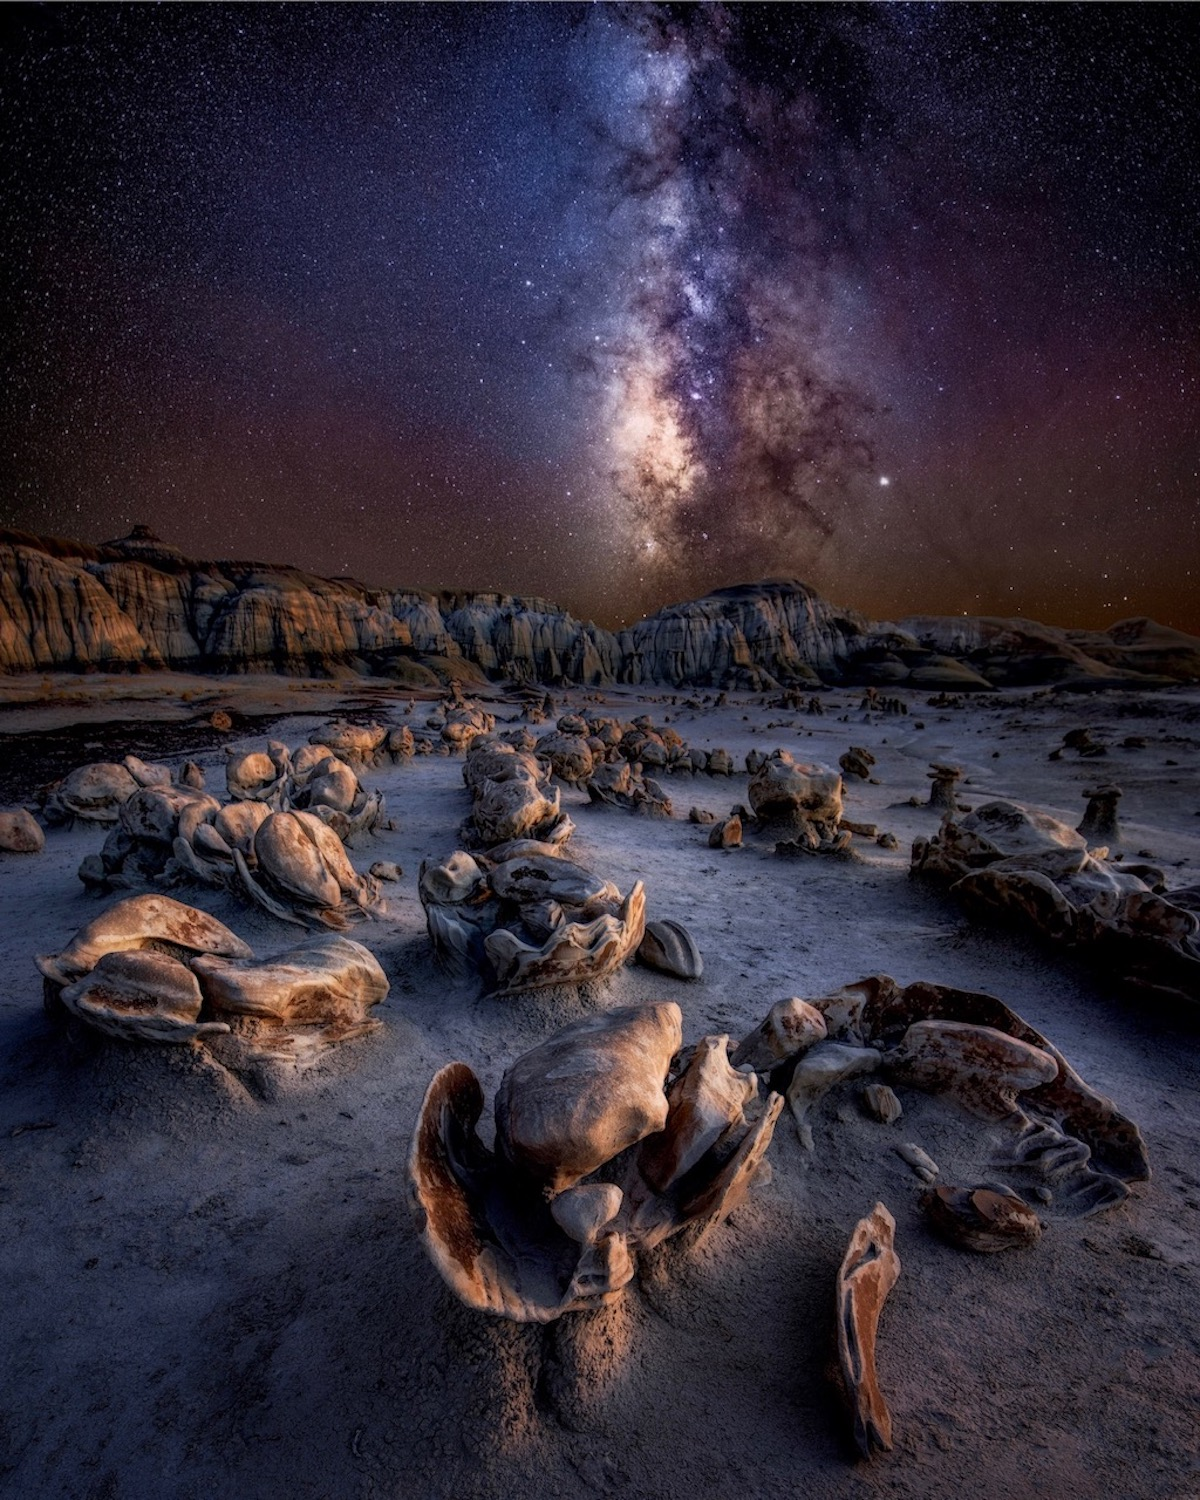 The Best Pictures of the Milky Way of the Year